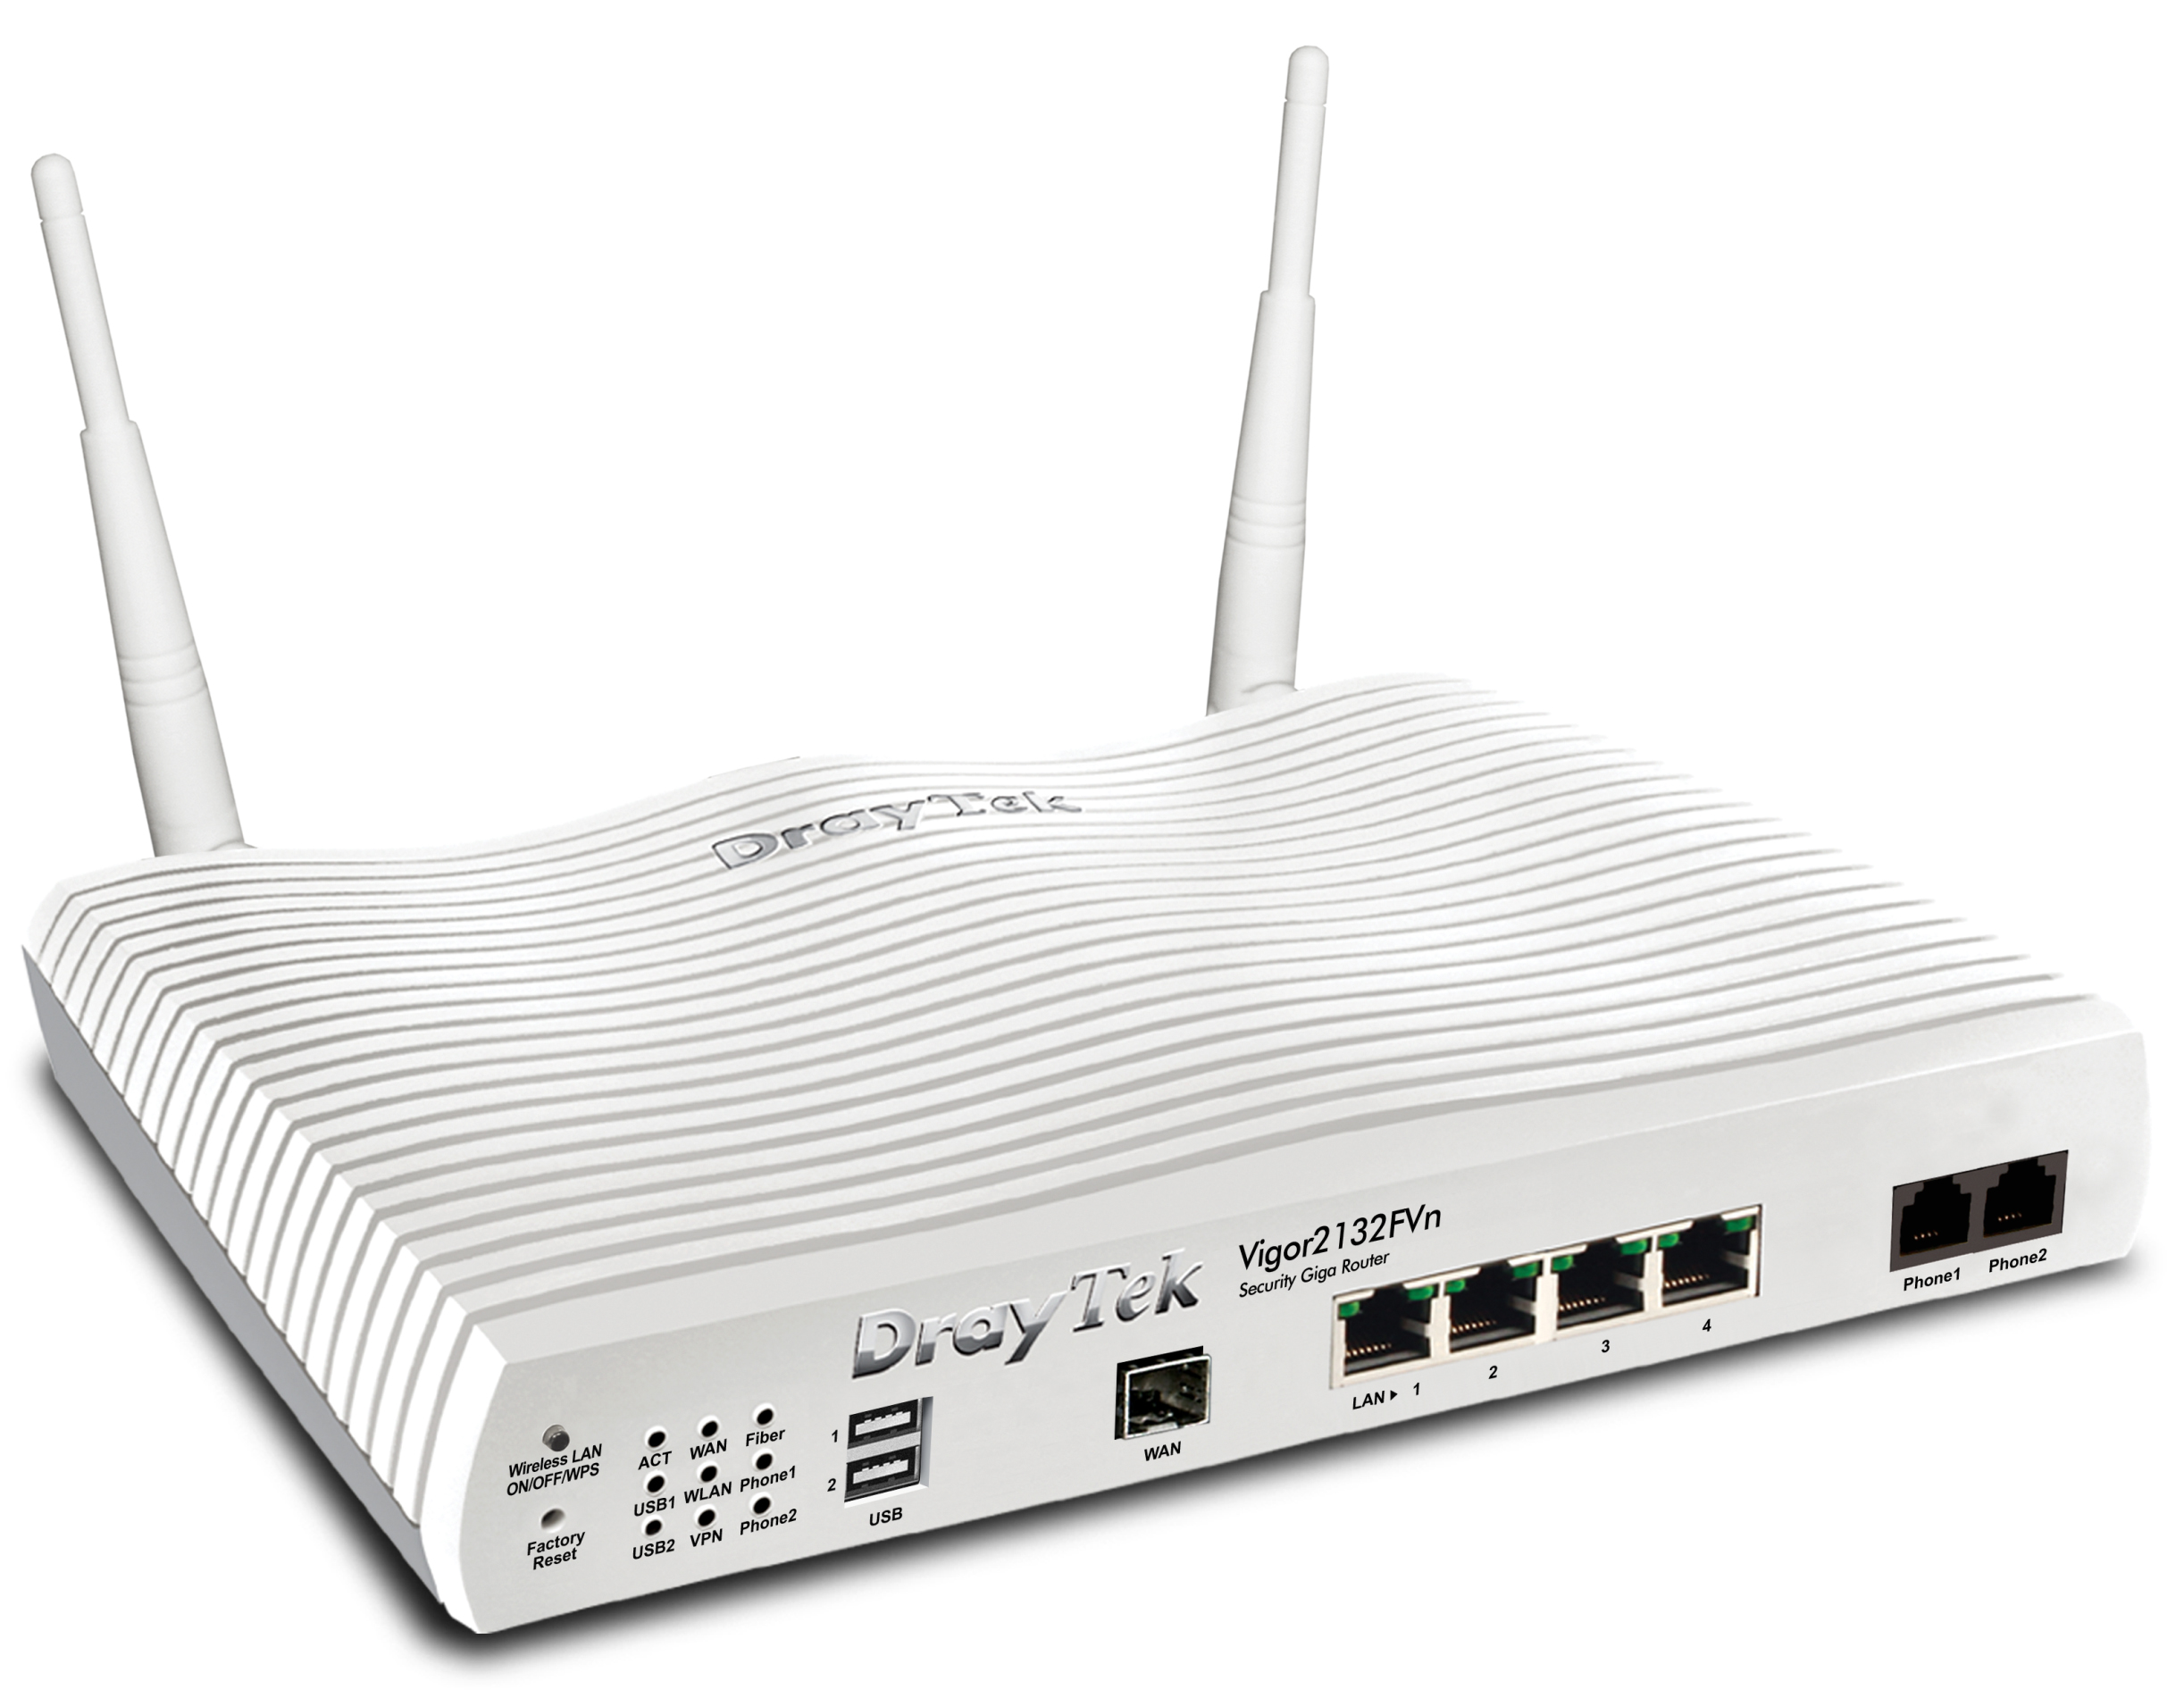 DrayTek Vigor 2132FVn wireless glasvezel router